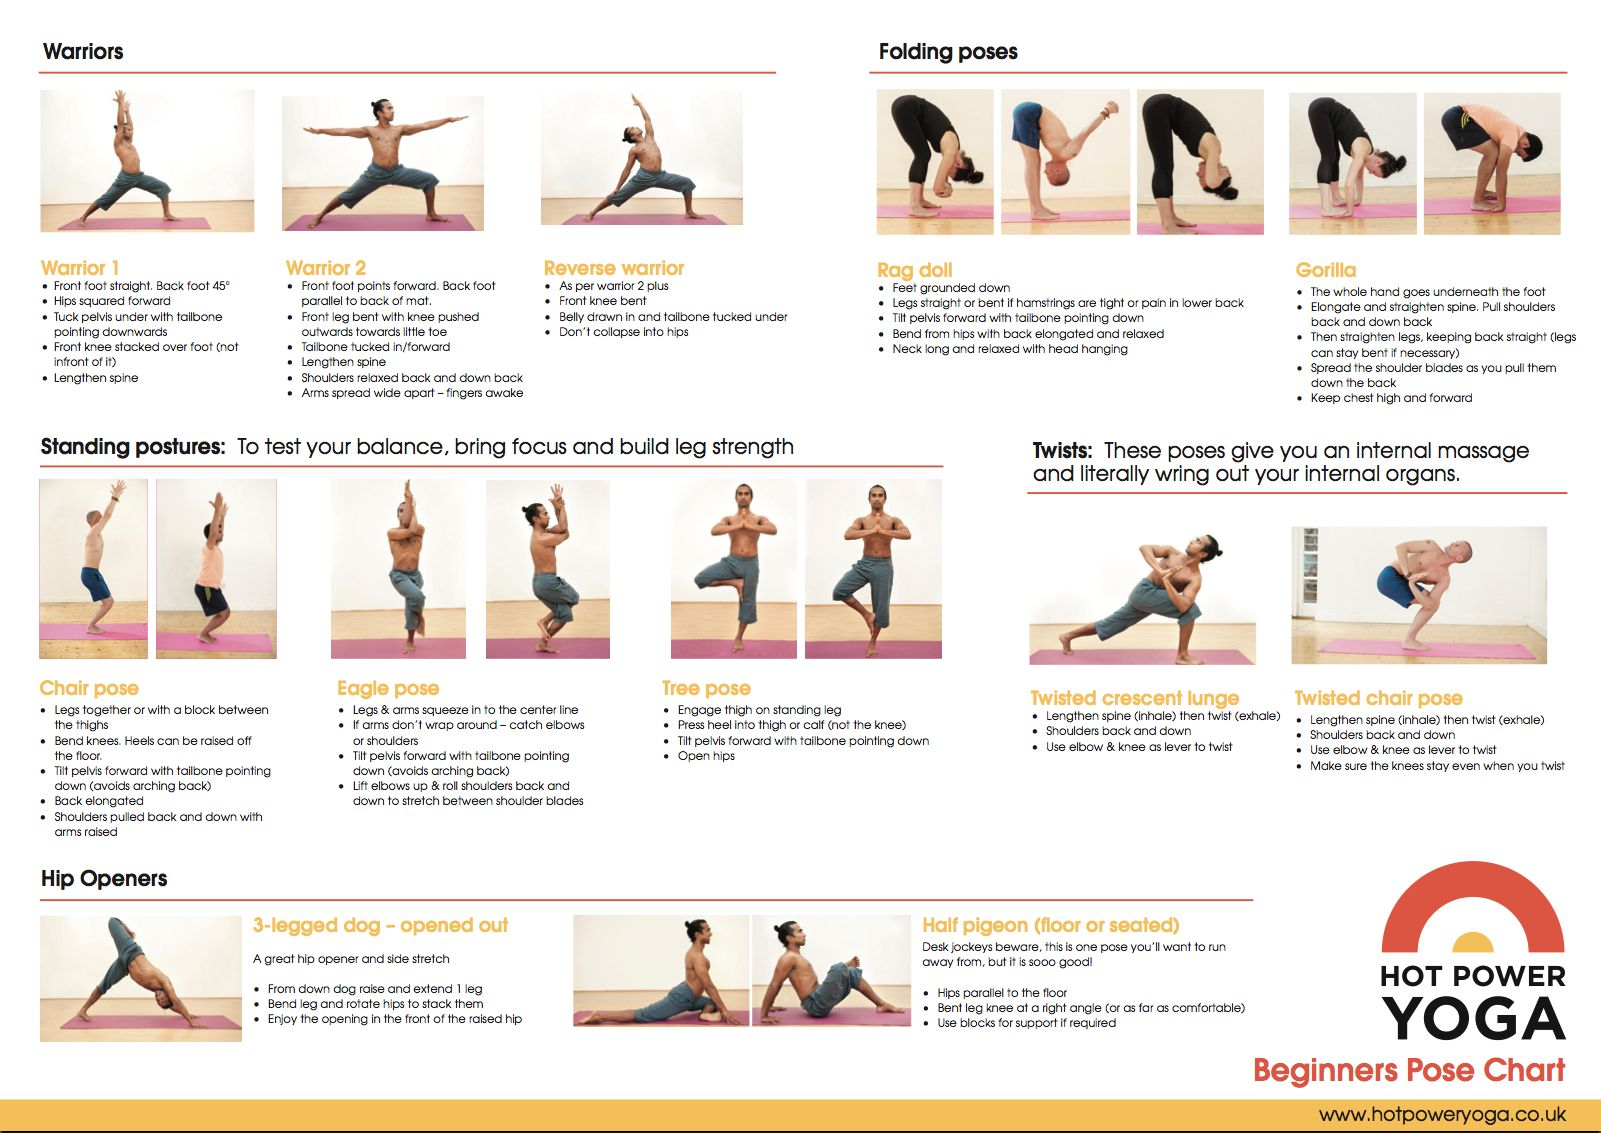 Yoga Poses For Beginners At Home Chart Yoga Poses For Beginners At Home Chart Beginner Yoga Workout Yoga Poses For Beginners Power Yoga Poses